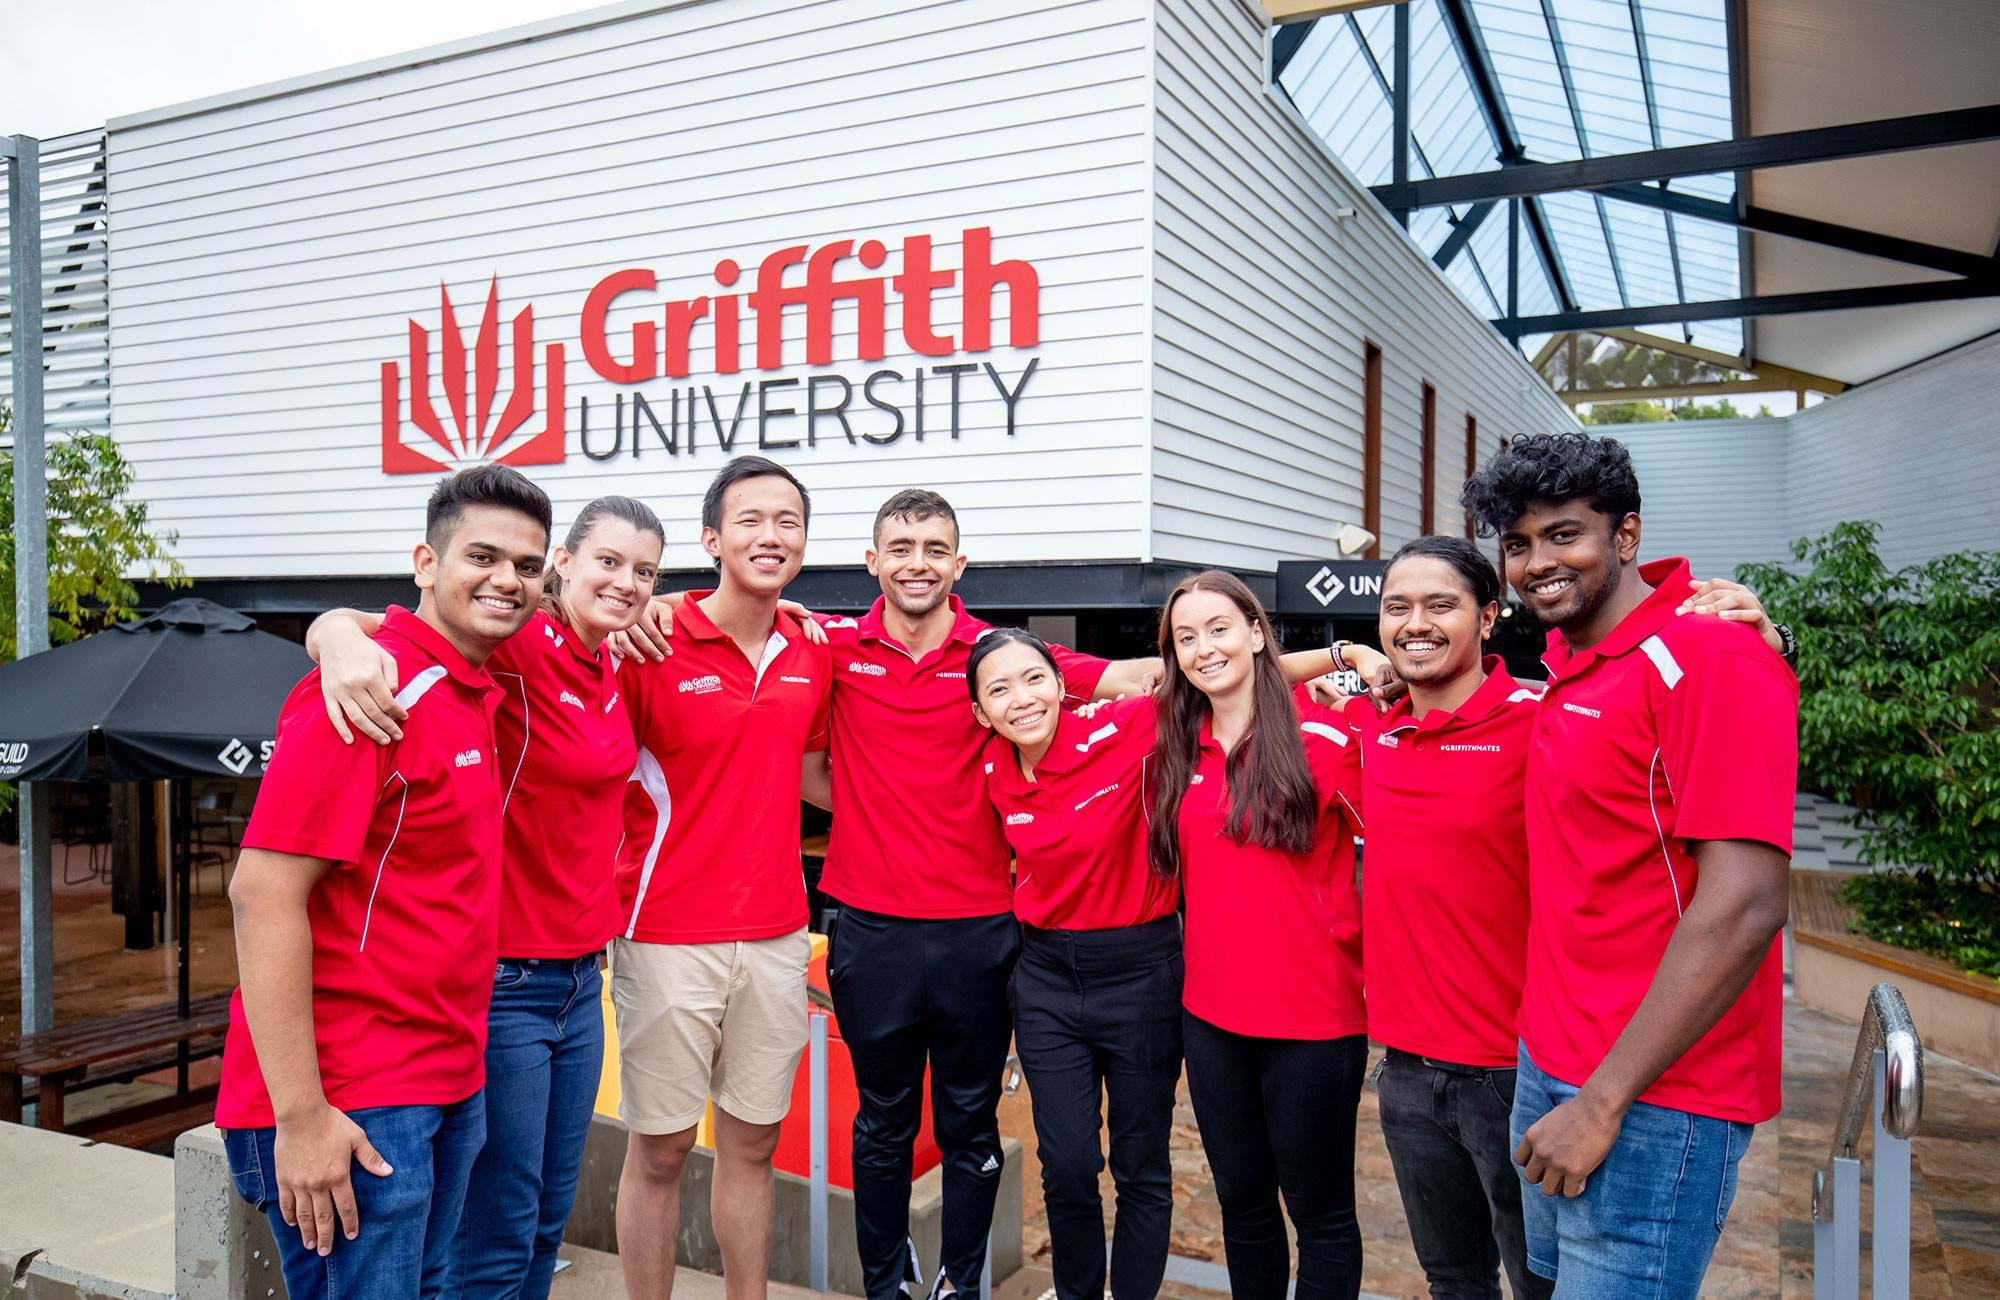 studenter vid griffith university med matchande tröjor